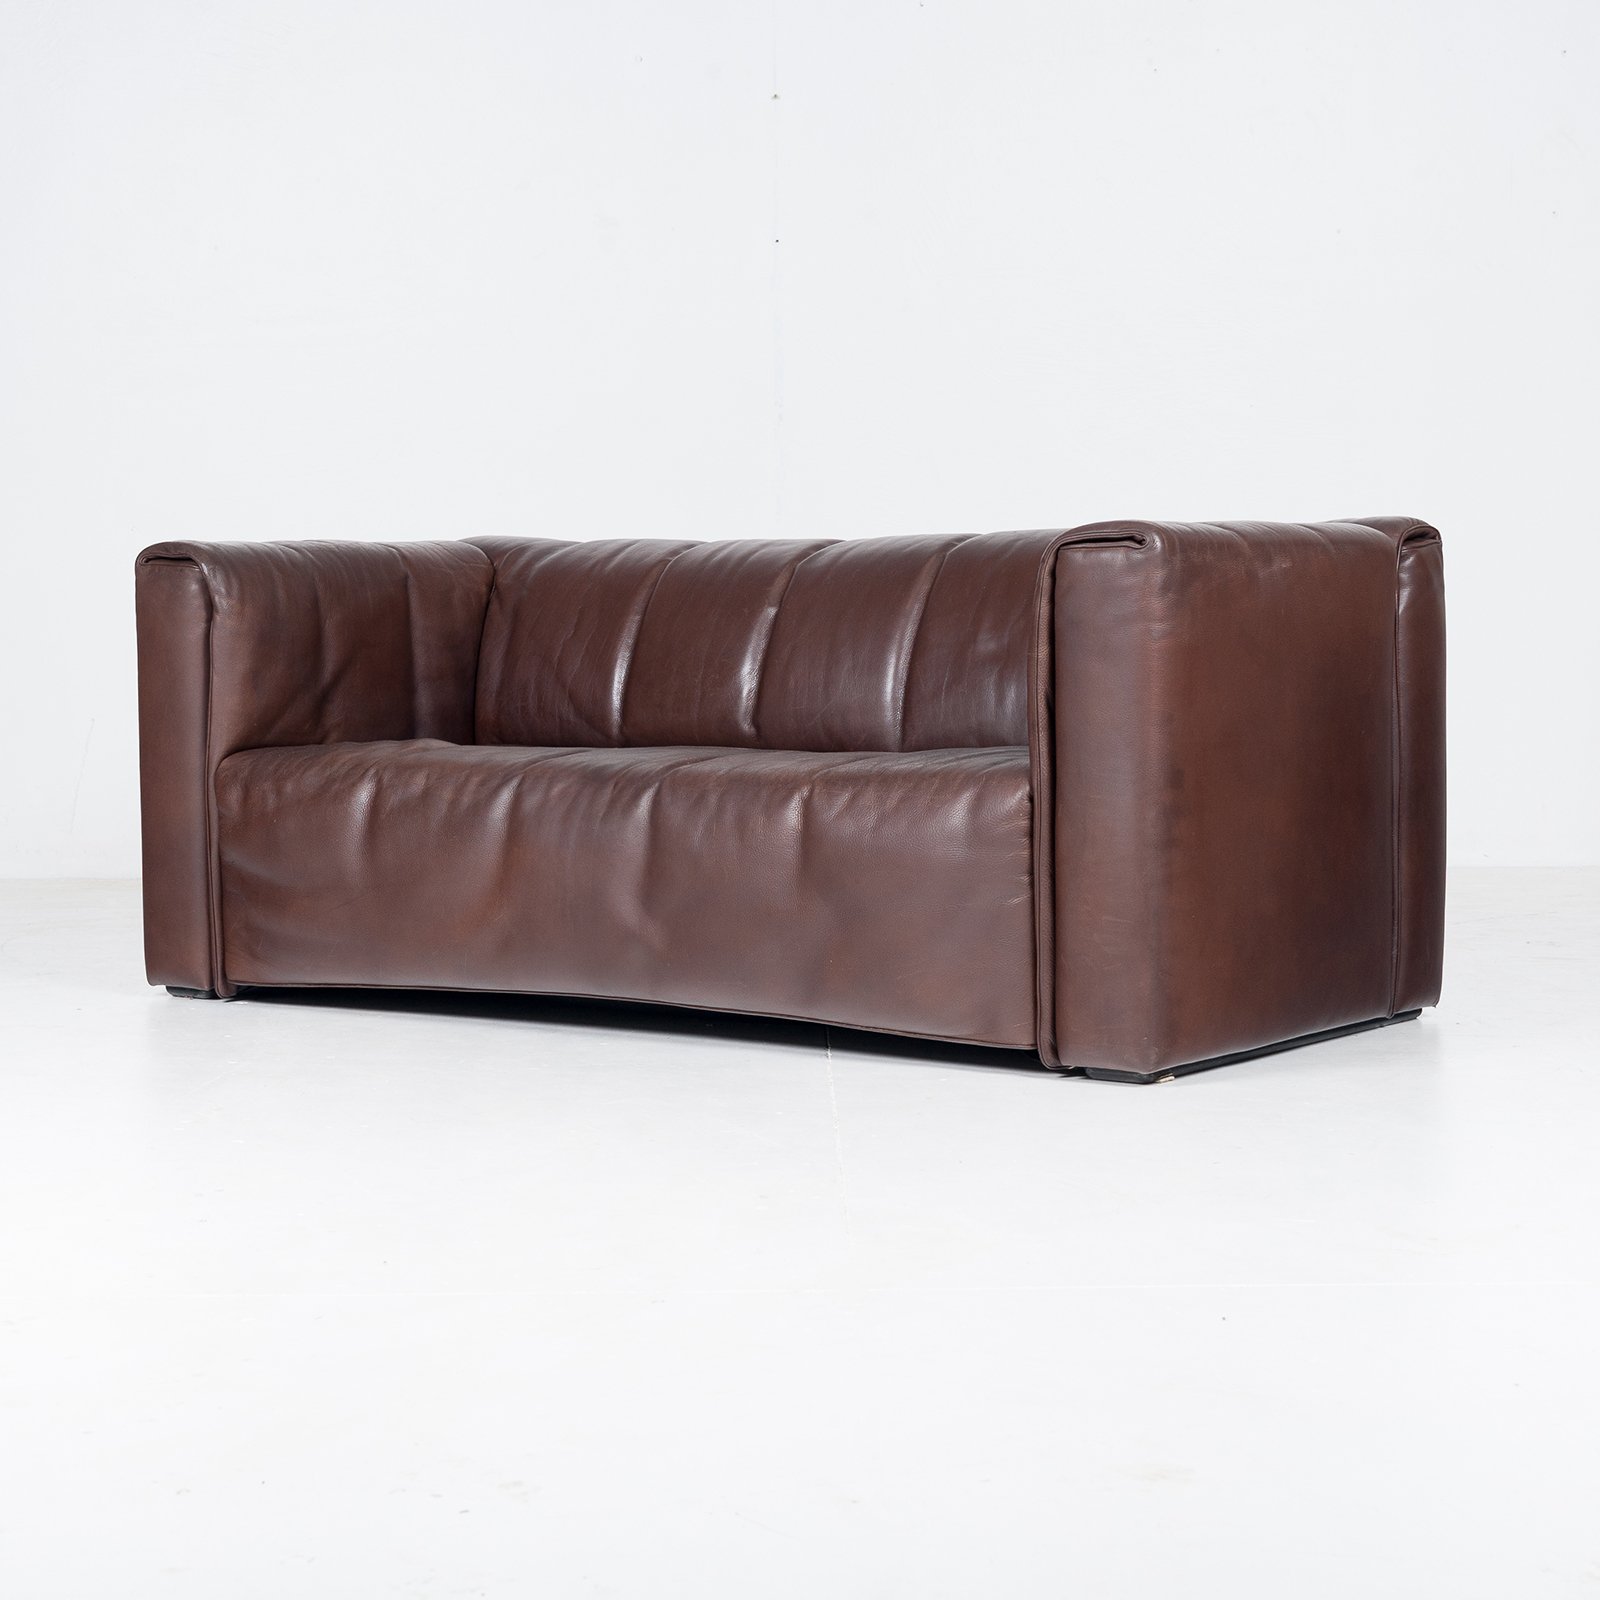 2.5 Seat Leather Sofa By Wittmann, Austria36